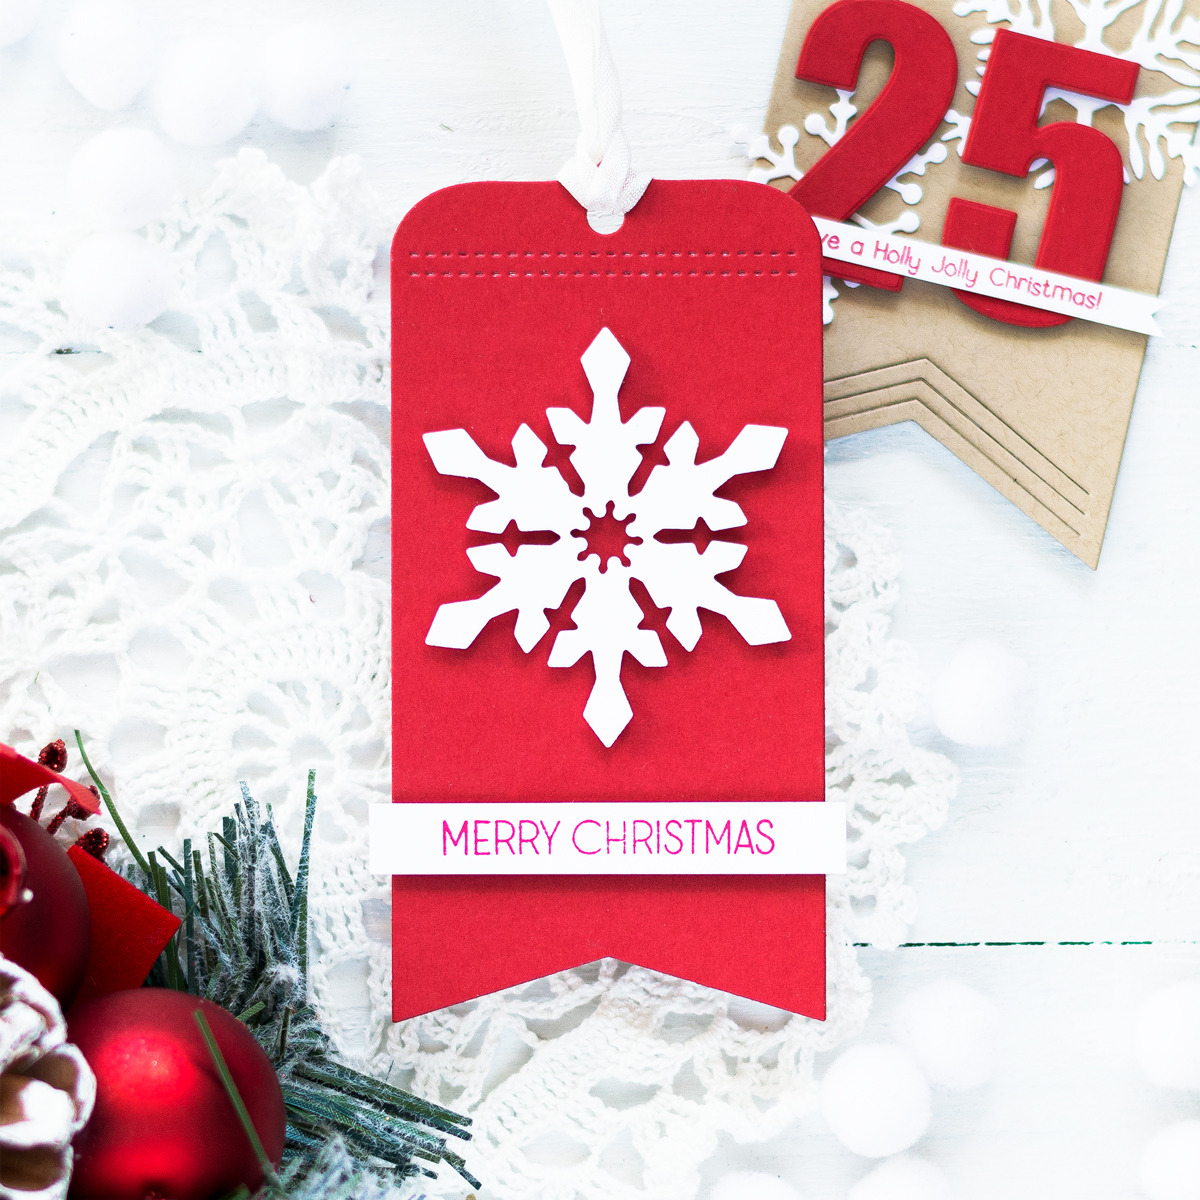 Christmas Tags. Card by Svitlana Shayevich